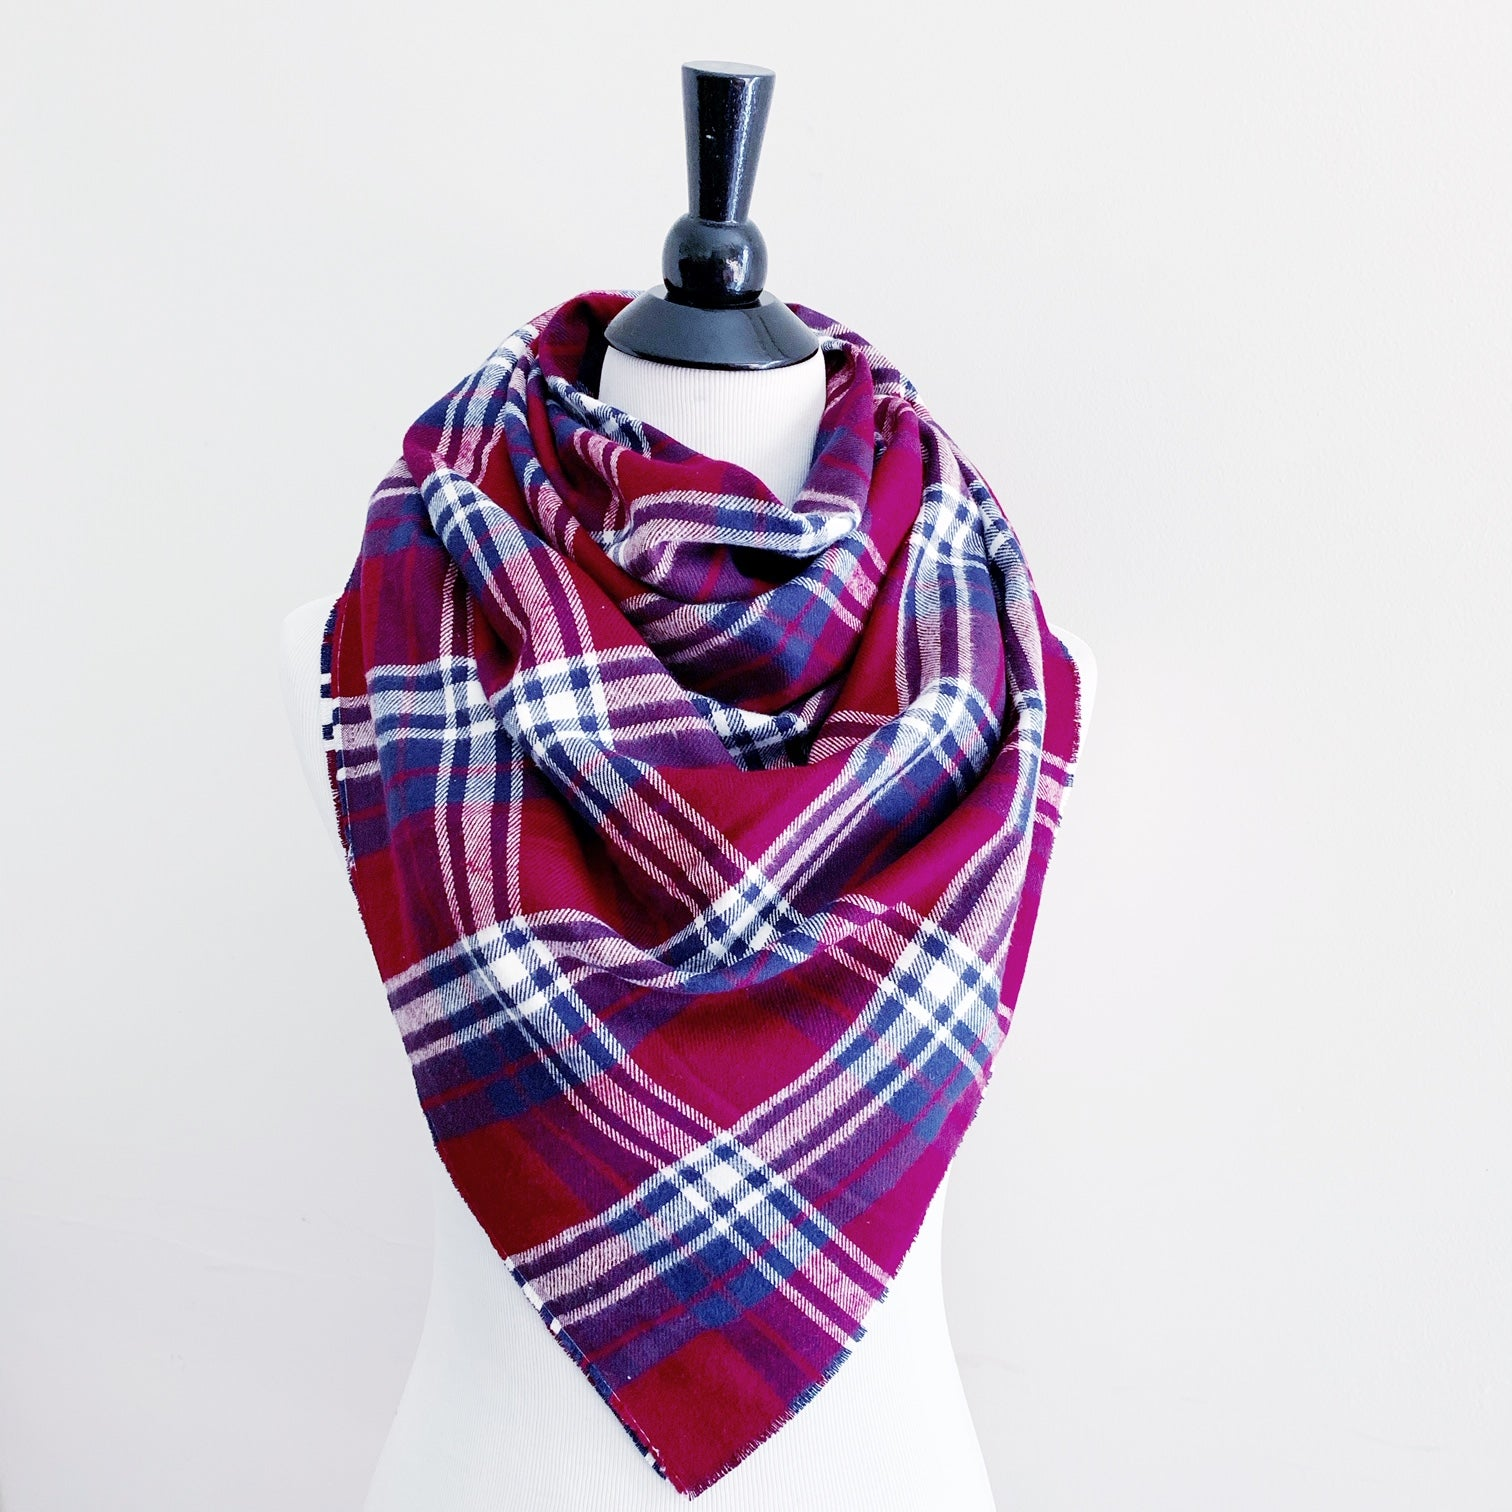 Blanket Scarf - Red/Navy/White Plaid